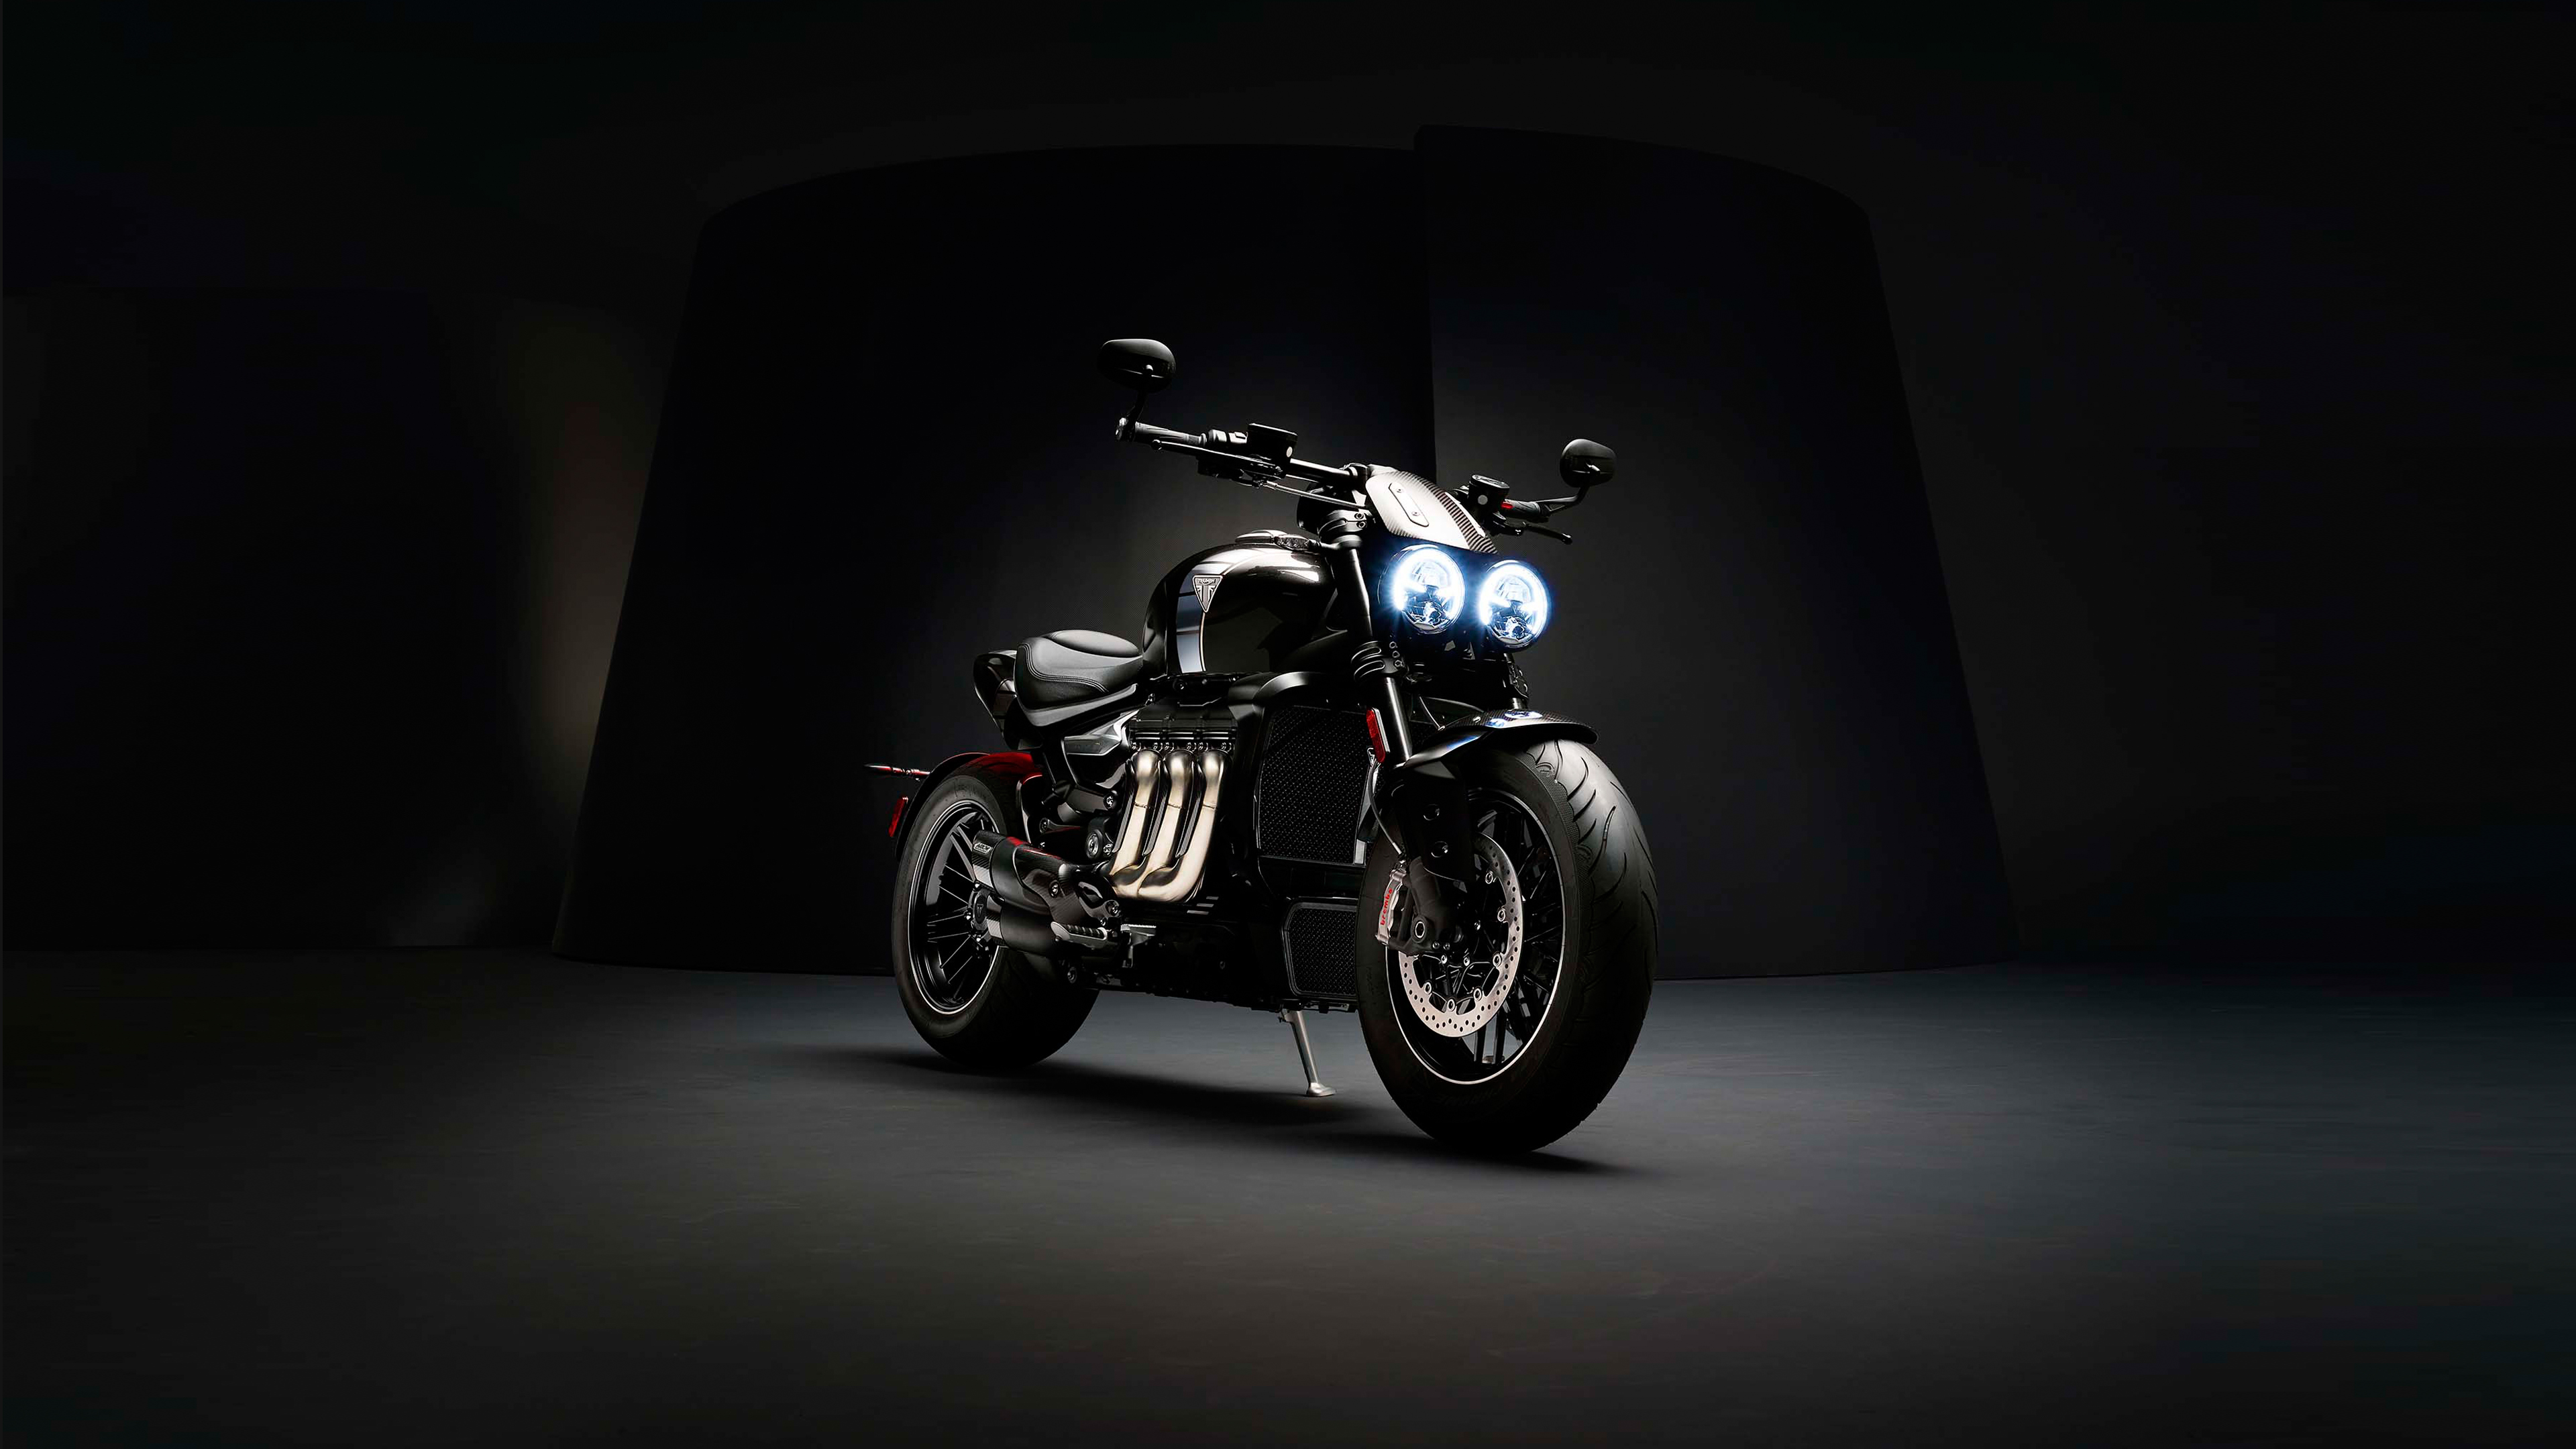 Triumph Rocket 3 TFC HD Wallpaper 4K Resolution